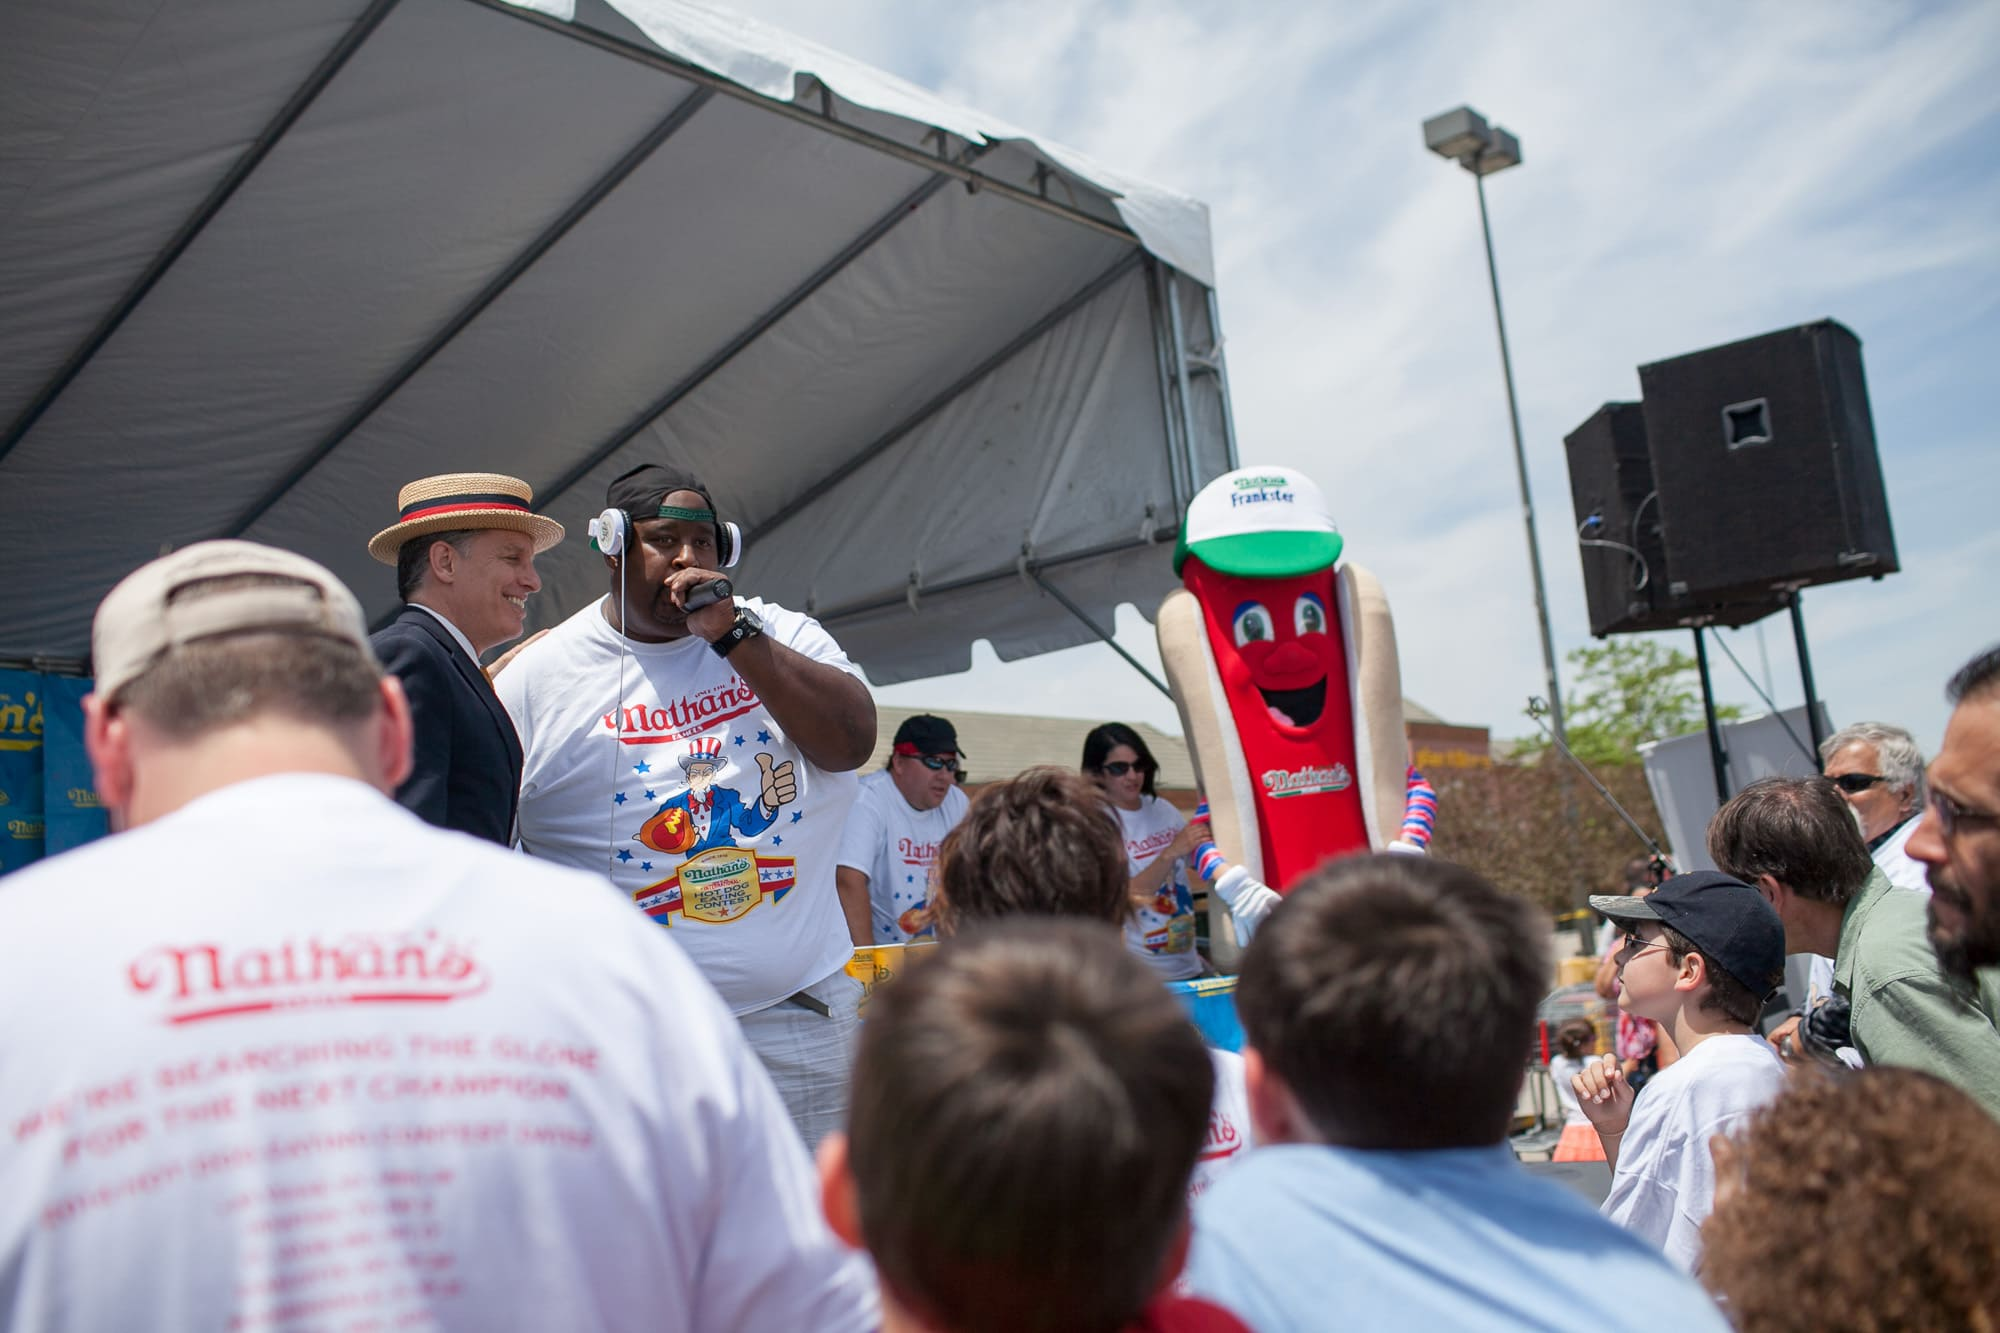 Eric Badlands Booker raps at the hot dog eating contest at the Bloomingdale, Illinois, Kmart